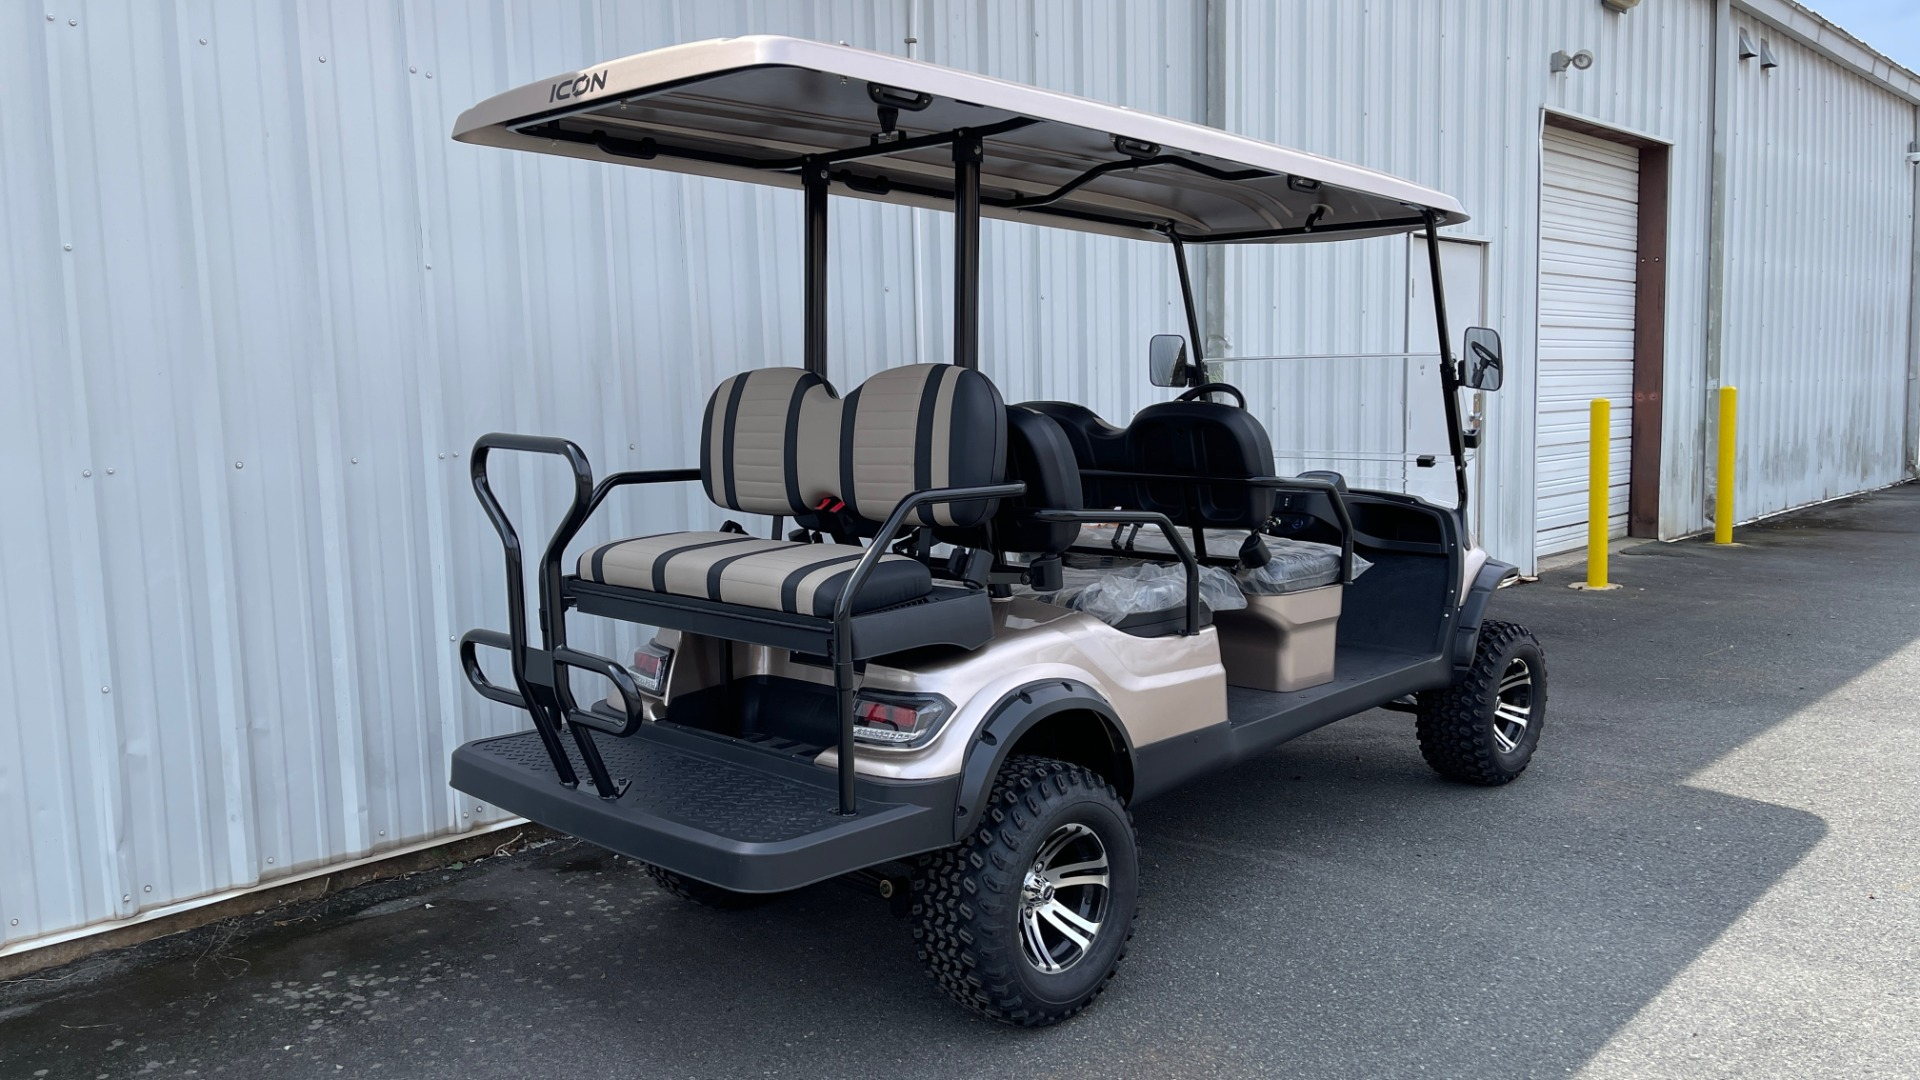 Used 2021 ICON I60L LIFTED ELECTRIC CAR / 6-PASSENGER GOLF CART / 25MPH / NEW / 1-MILE for sale $11,399 at Formula Imports in Charlotte NC 28227 4